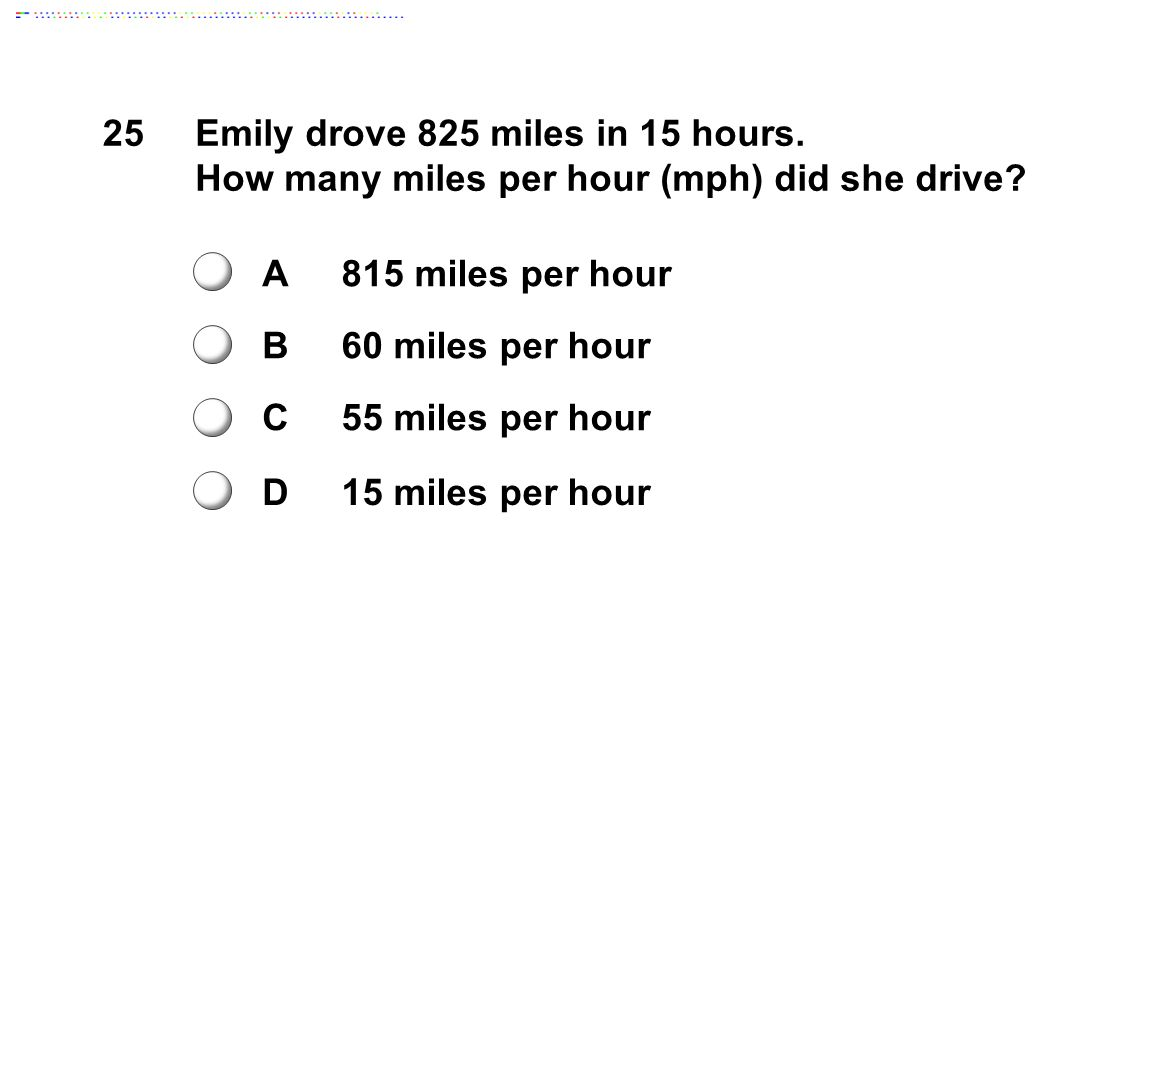 25Emily drove 825 miles in 15 hours.How many miles per hour (mph) did she drive.